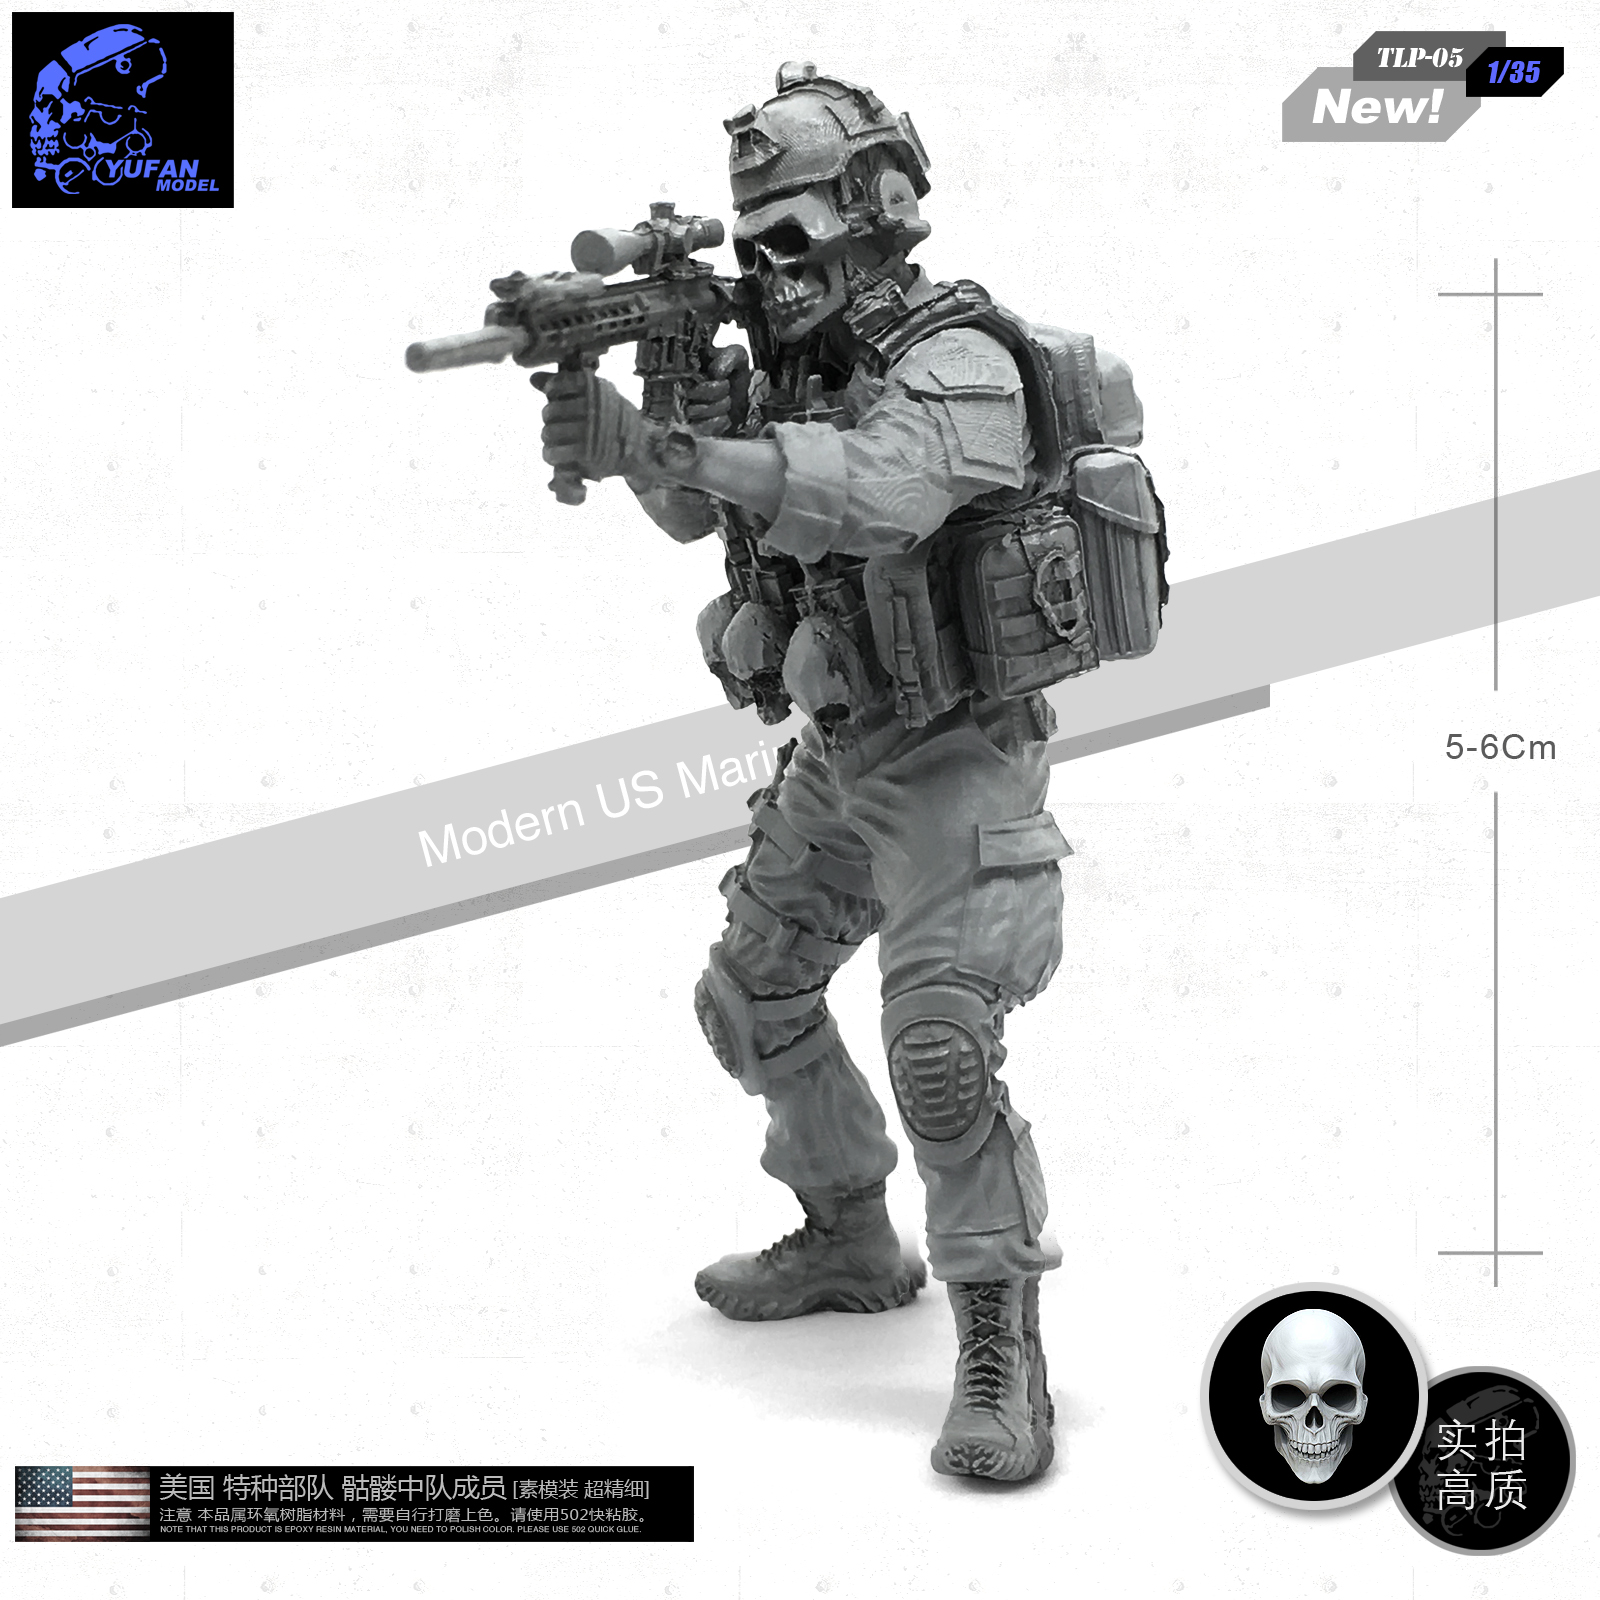 Yufan Model 1/35  Figure Resin Soldier Member Of Skull Squadron Of Us Special Forces Military Model Unmounted Tlp-05